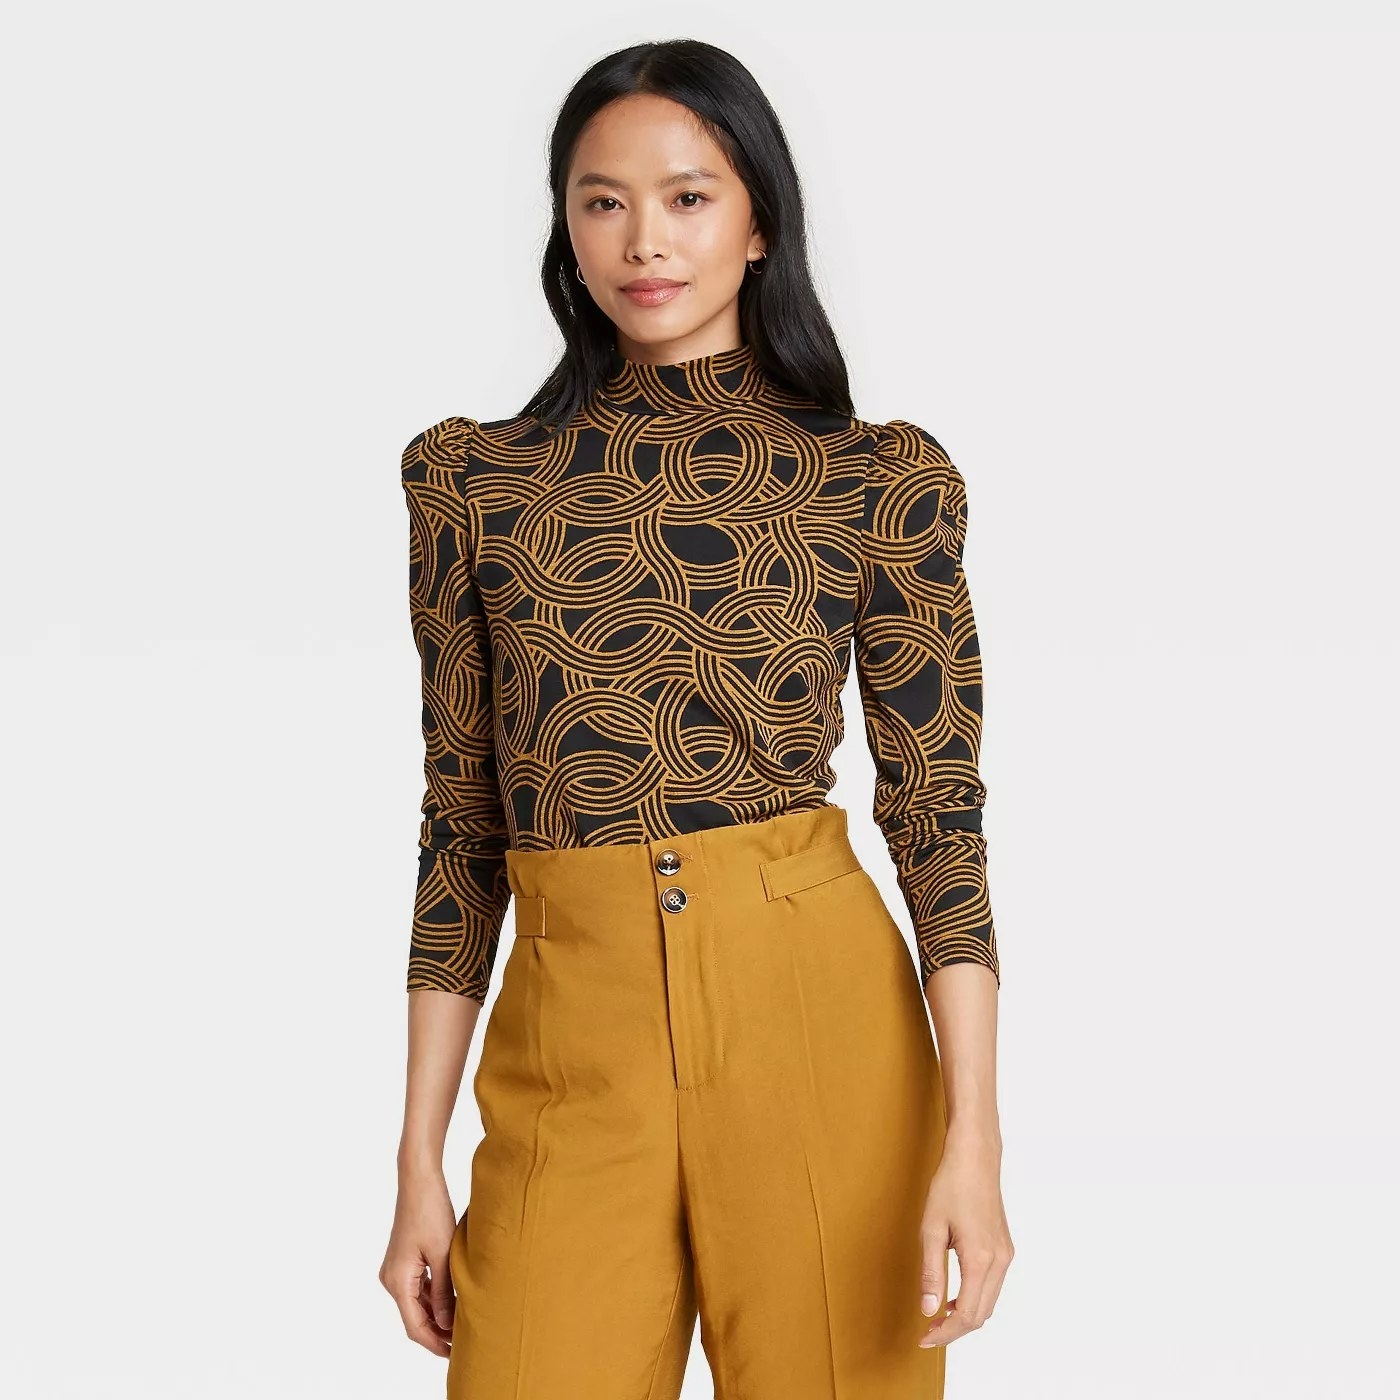 Black long sleeve top with circular gold pattern paired with high waisted mustard colored pants